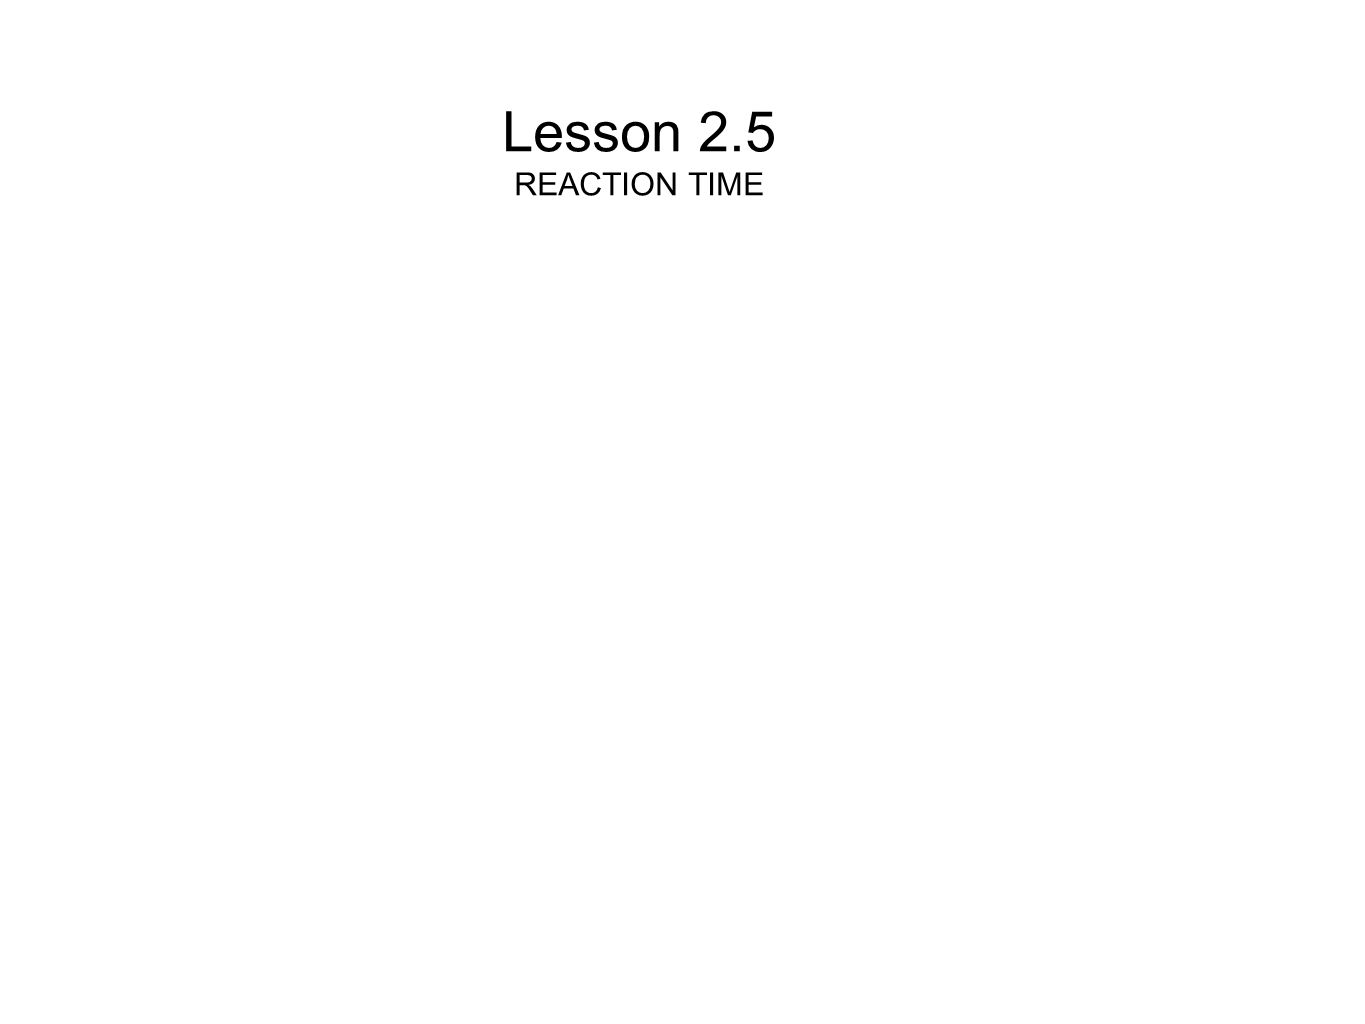 Lesson 2.5 REACTION TIME